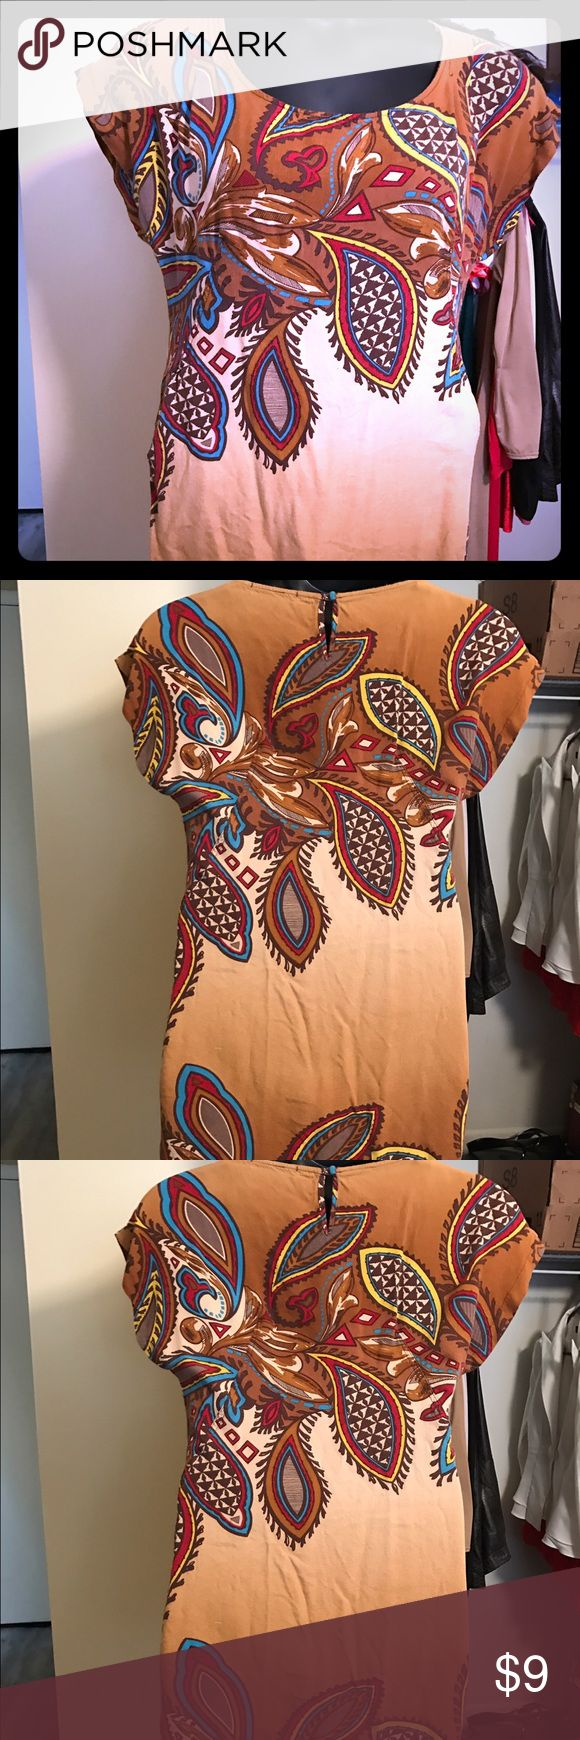 Size medium love 21 forever 21 dress Very cute size medium I call it Indian dress. Wore with tan boots feather earrings for a very cute day fall look Forever 21 Dresses Mini